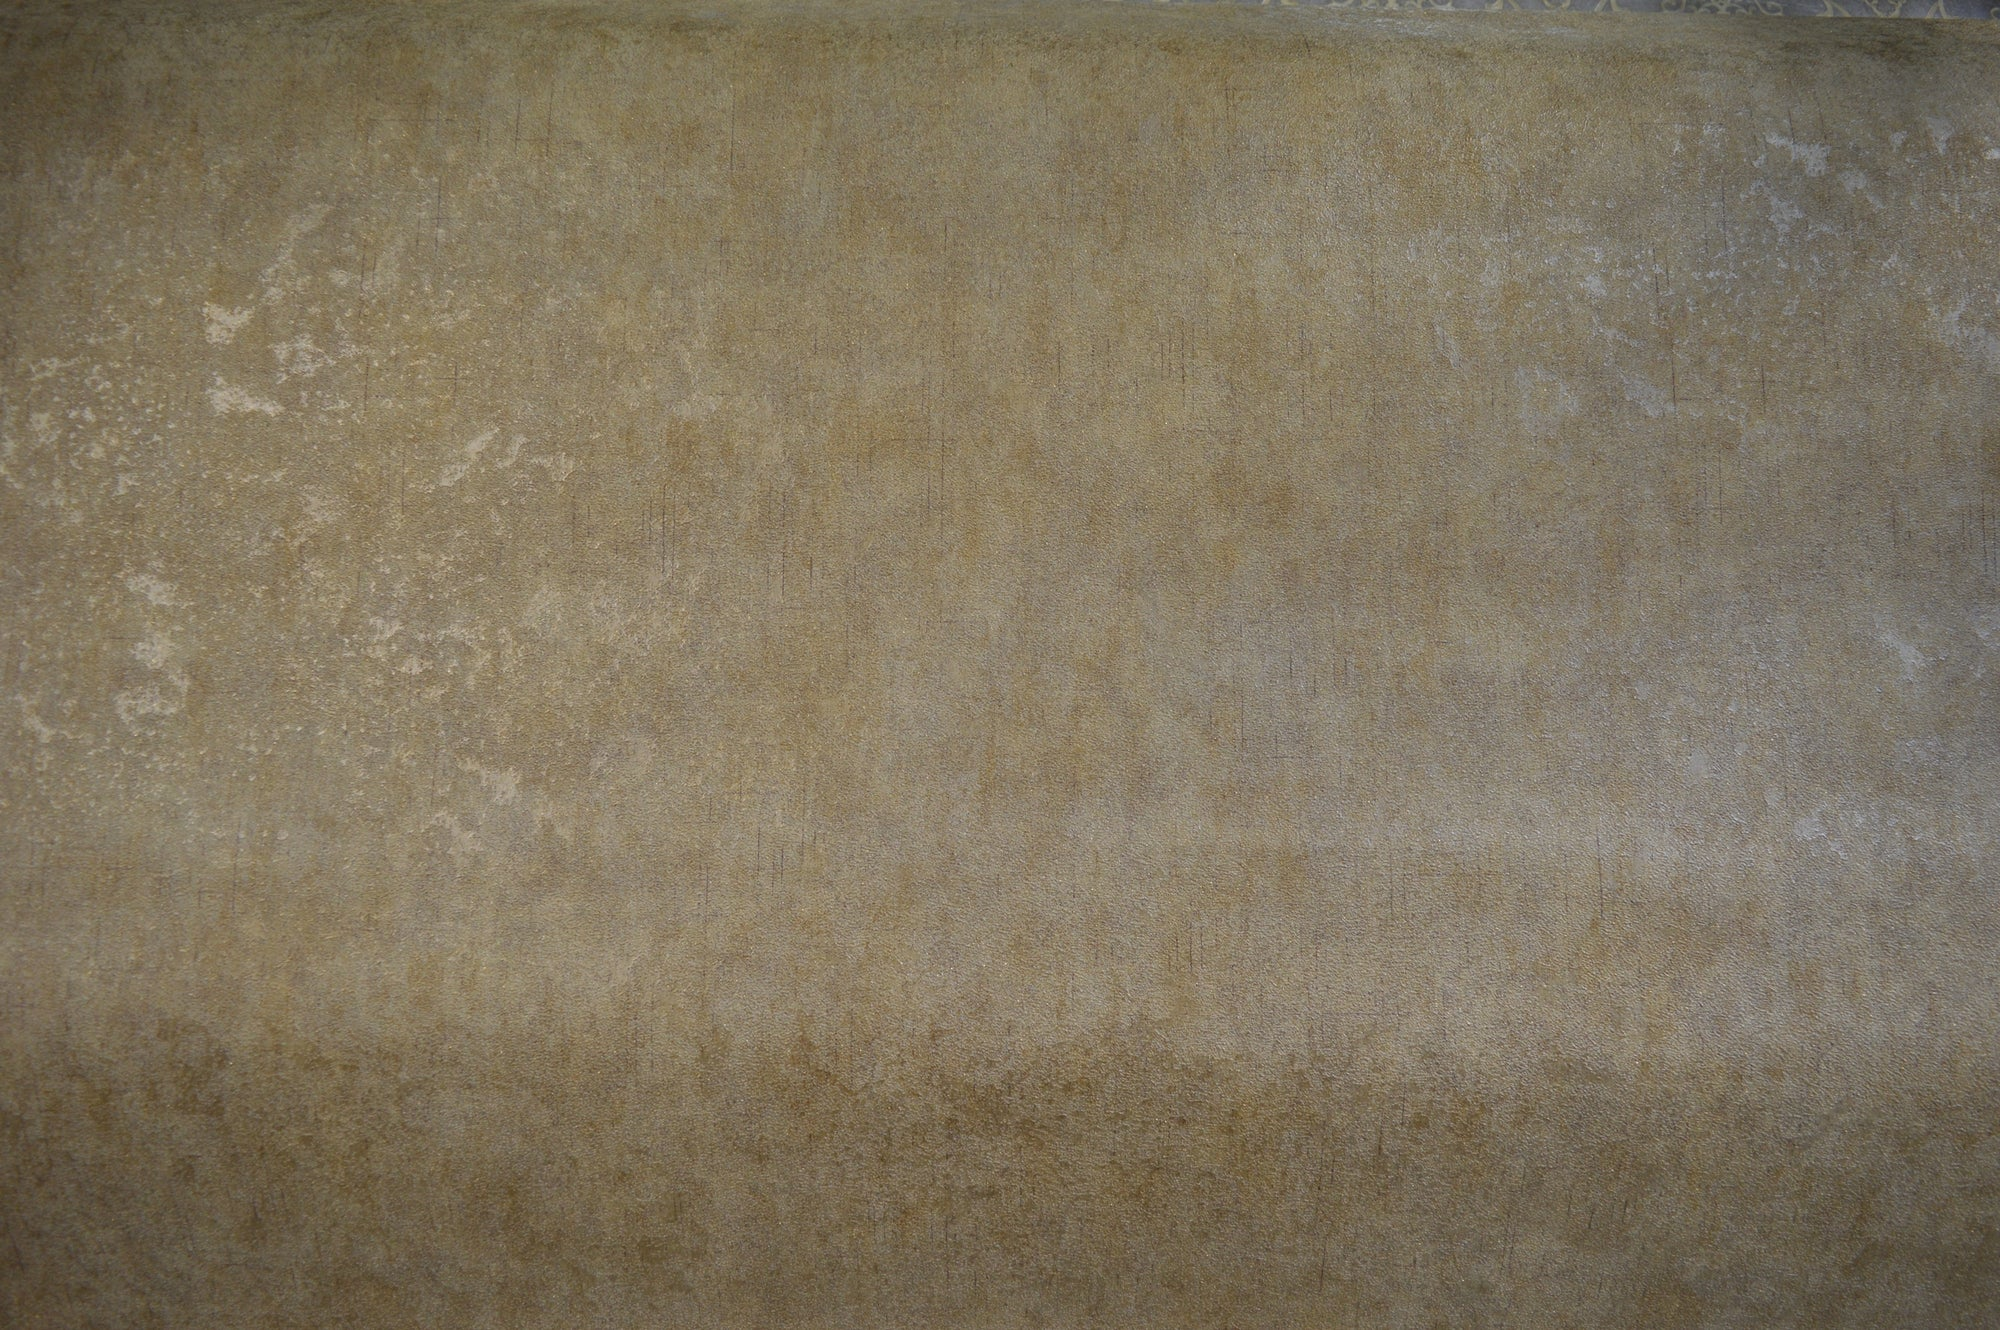 Beige discreet pattern luxury wallpaper